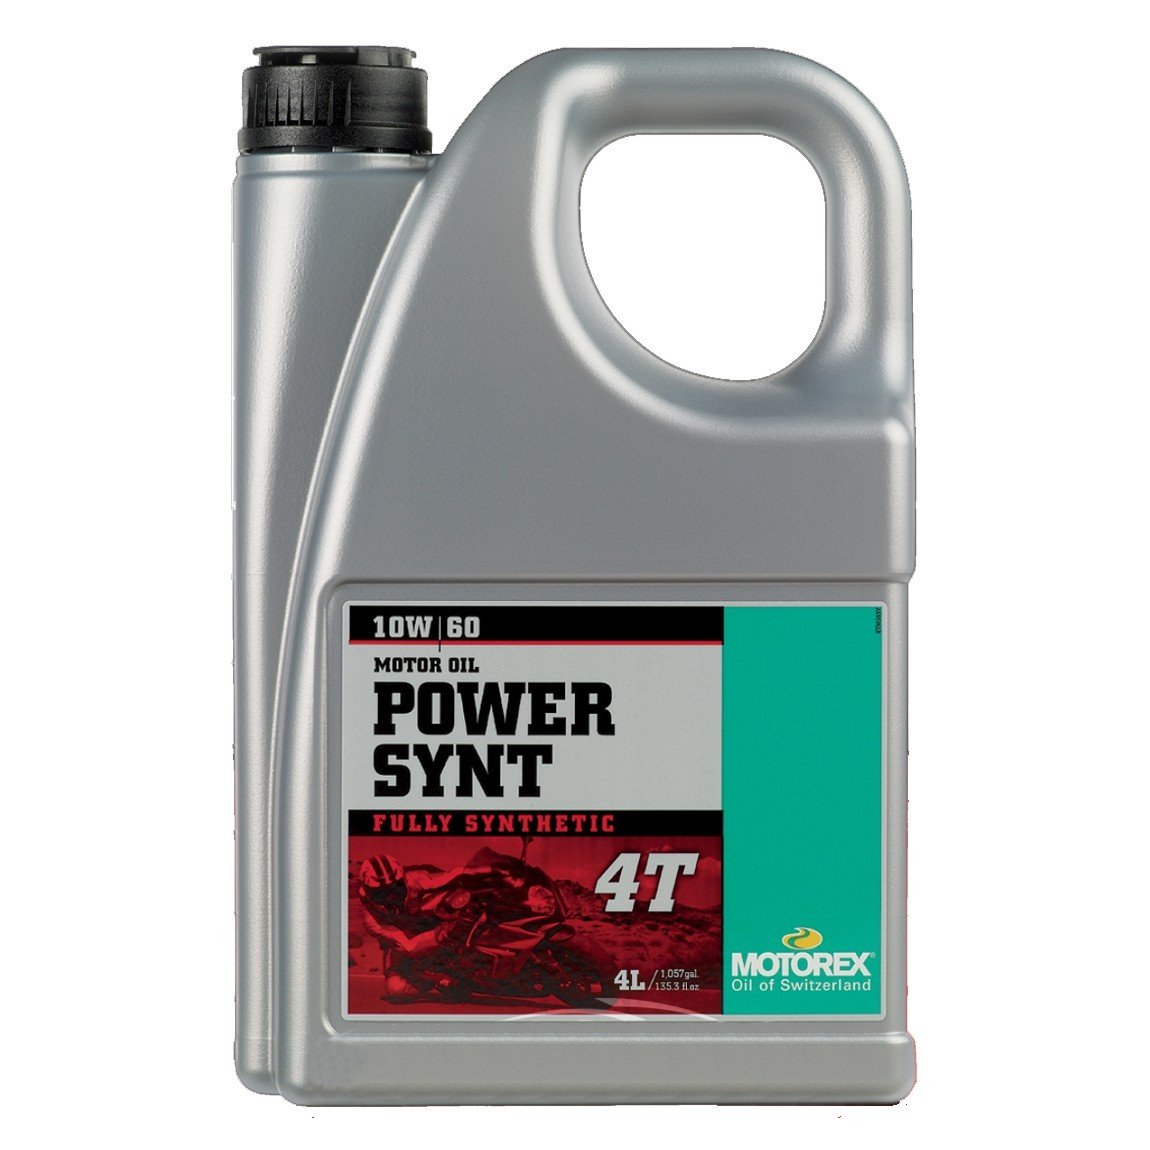 Motorex Power Synt 4T 10W-60, 4 l